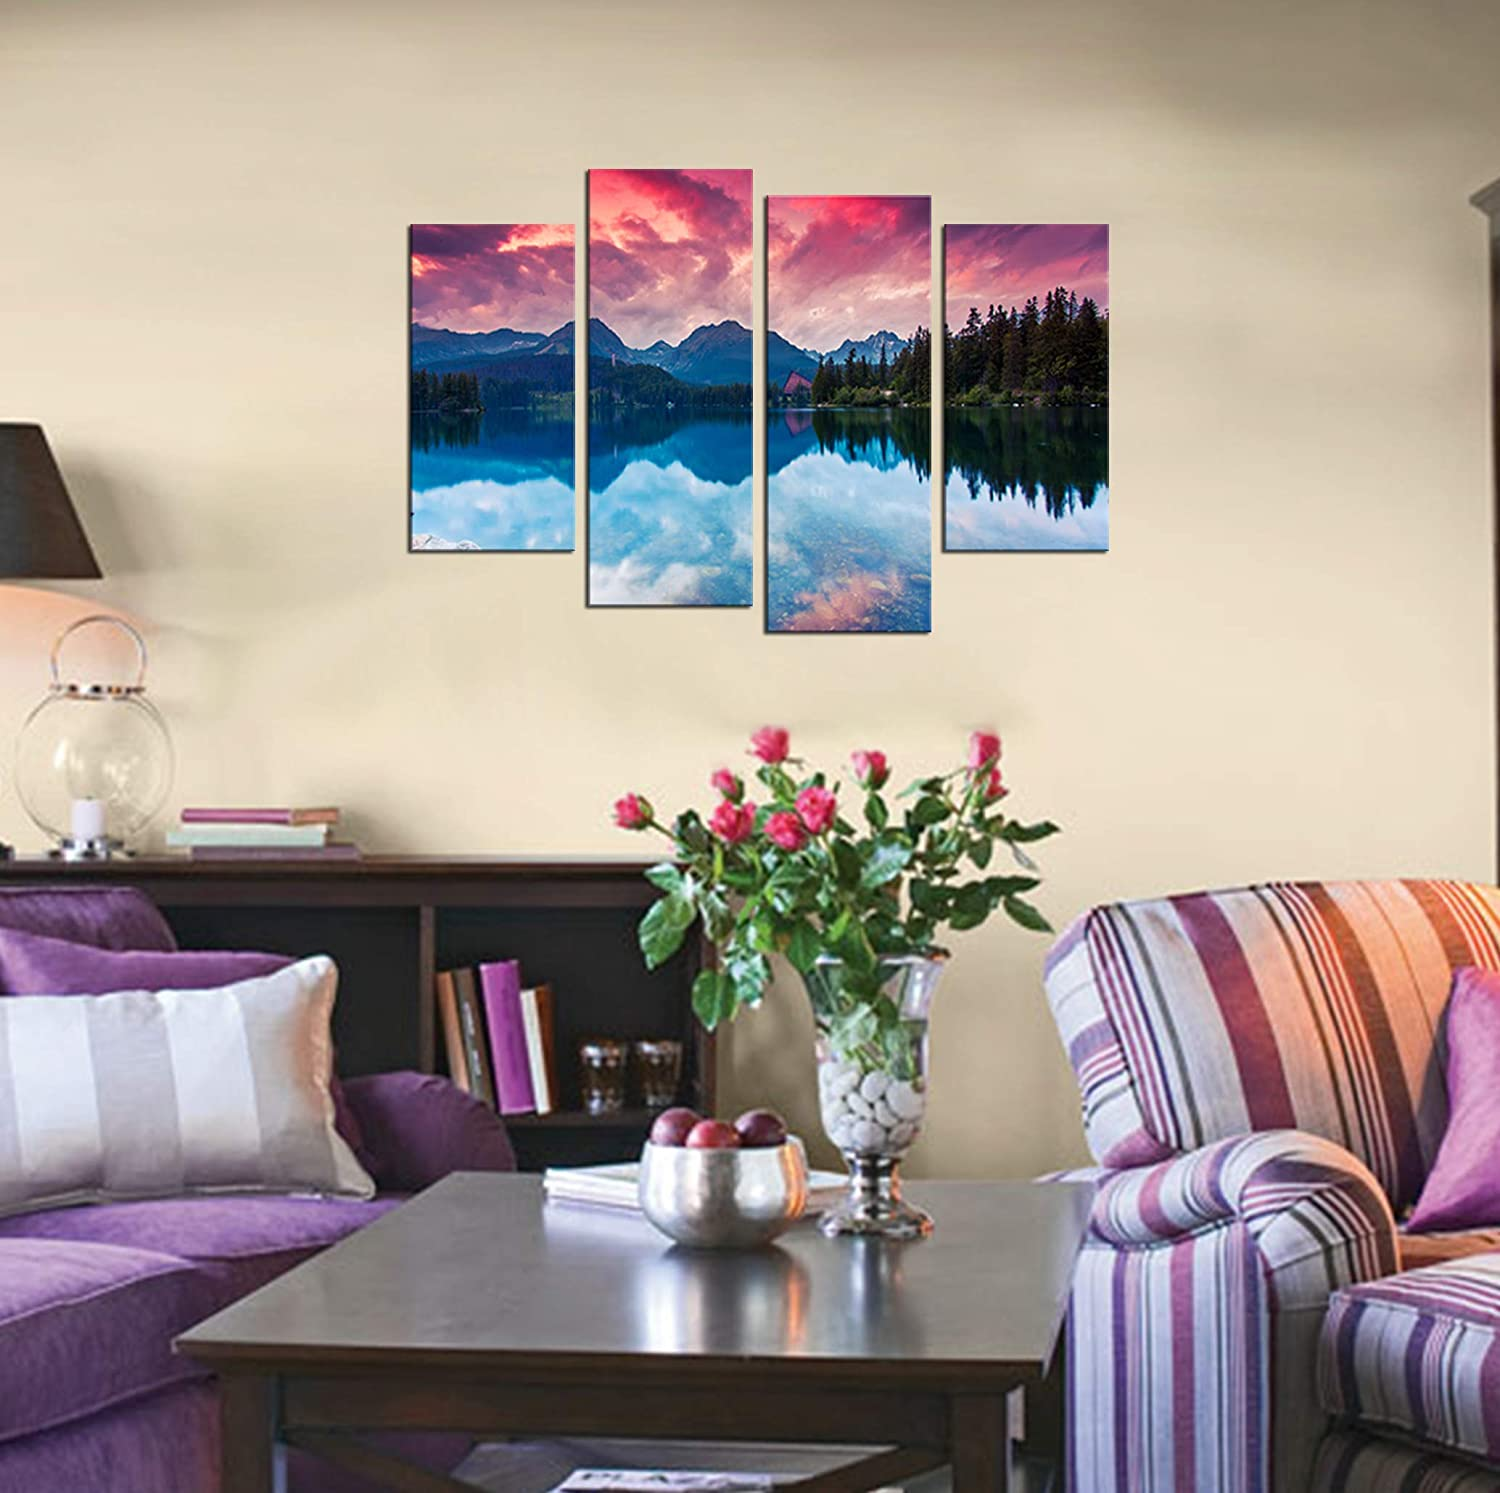 Natural art Modern Artwork Framed Canvas Printing 4 Panels Red Sky and Blue Lake Wall Art Paintings Set for Decor 12 x 24 inches-12 x 32 inches